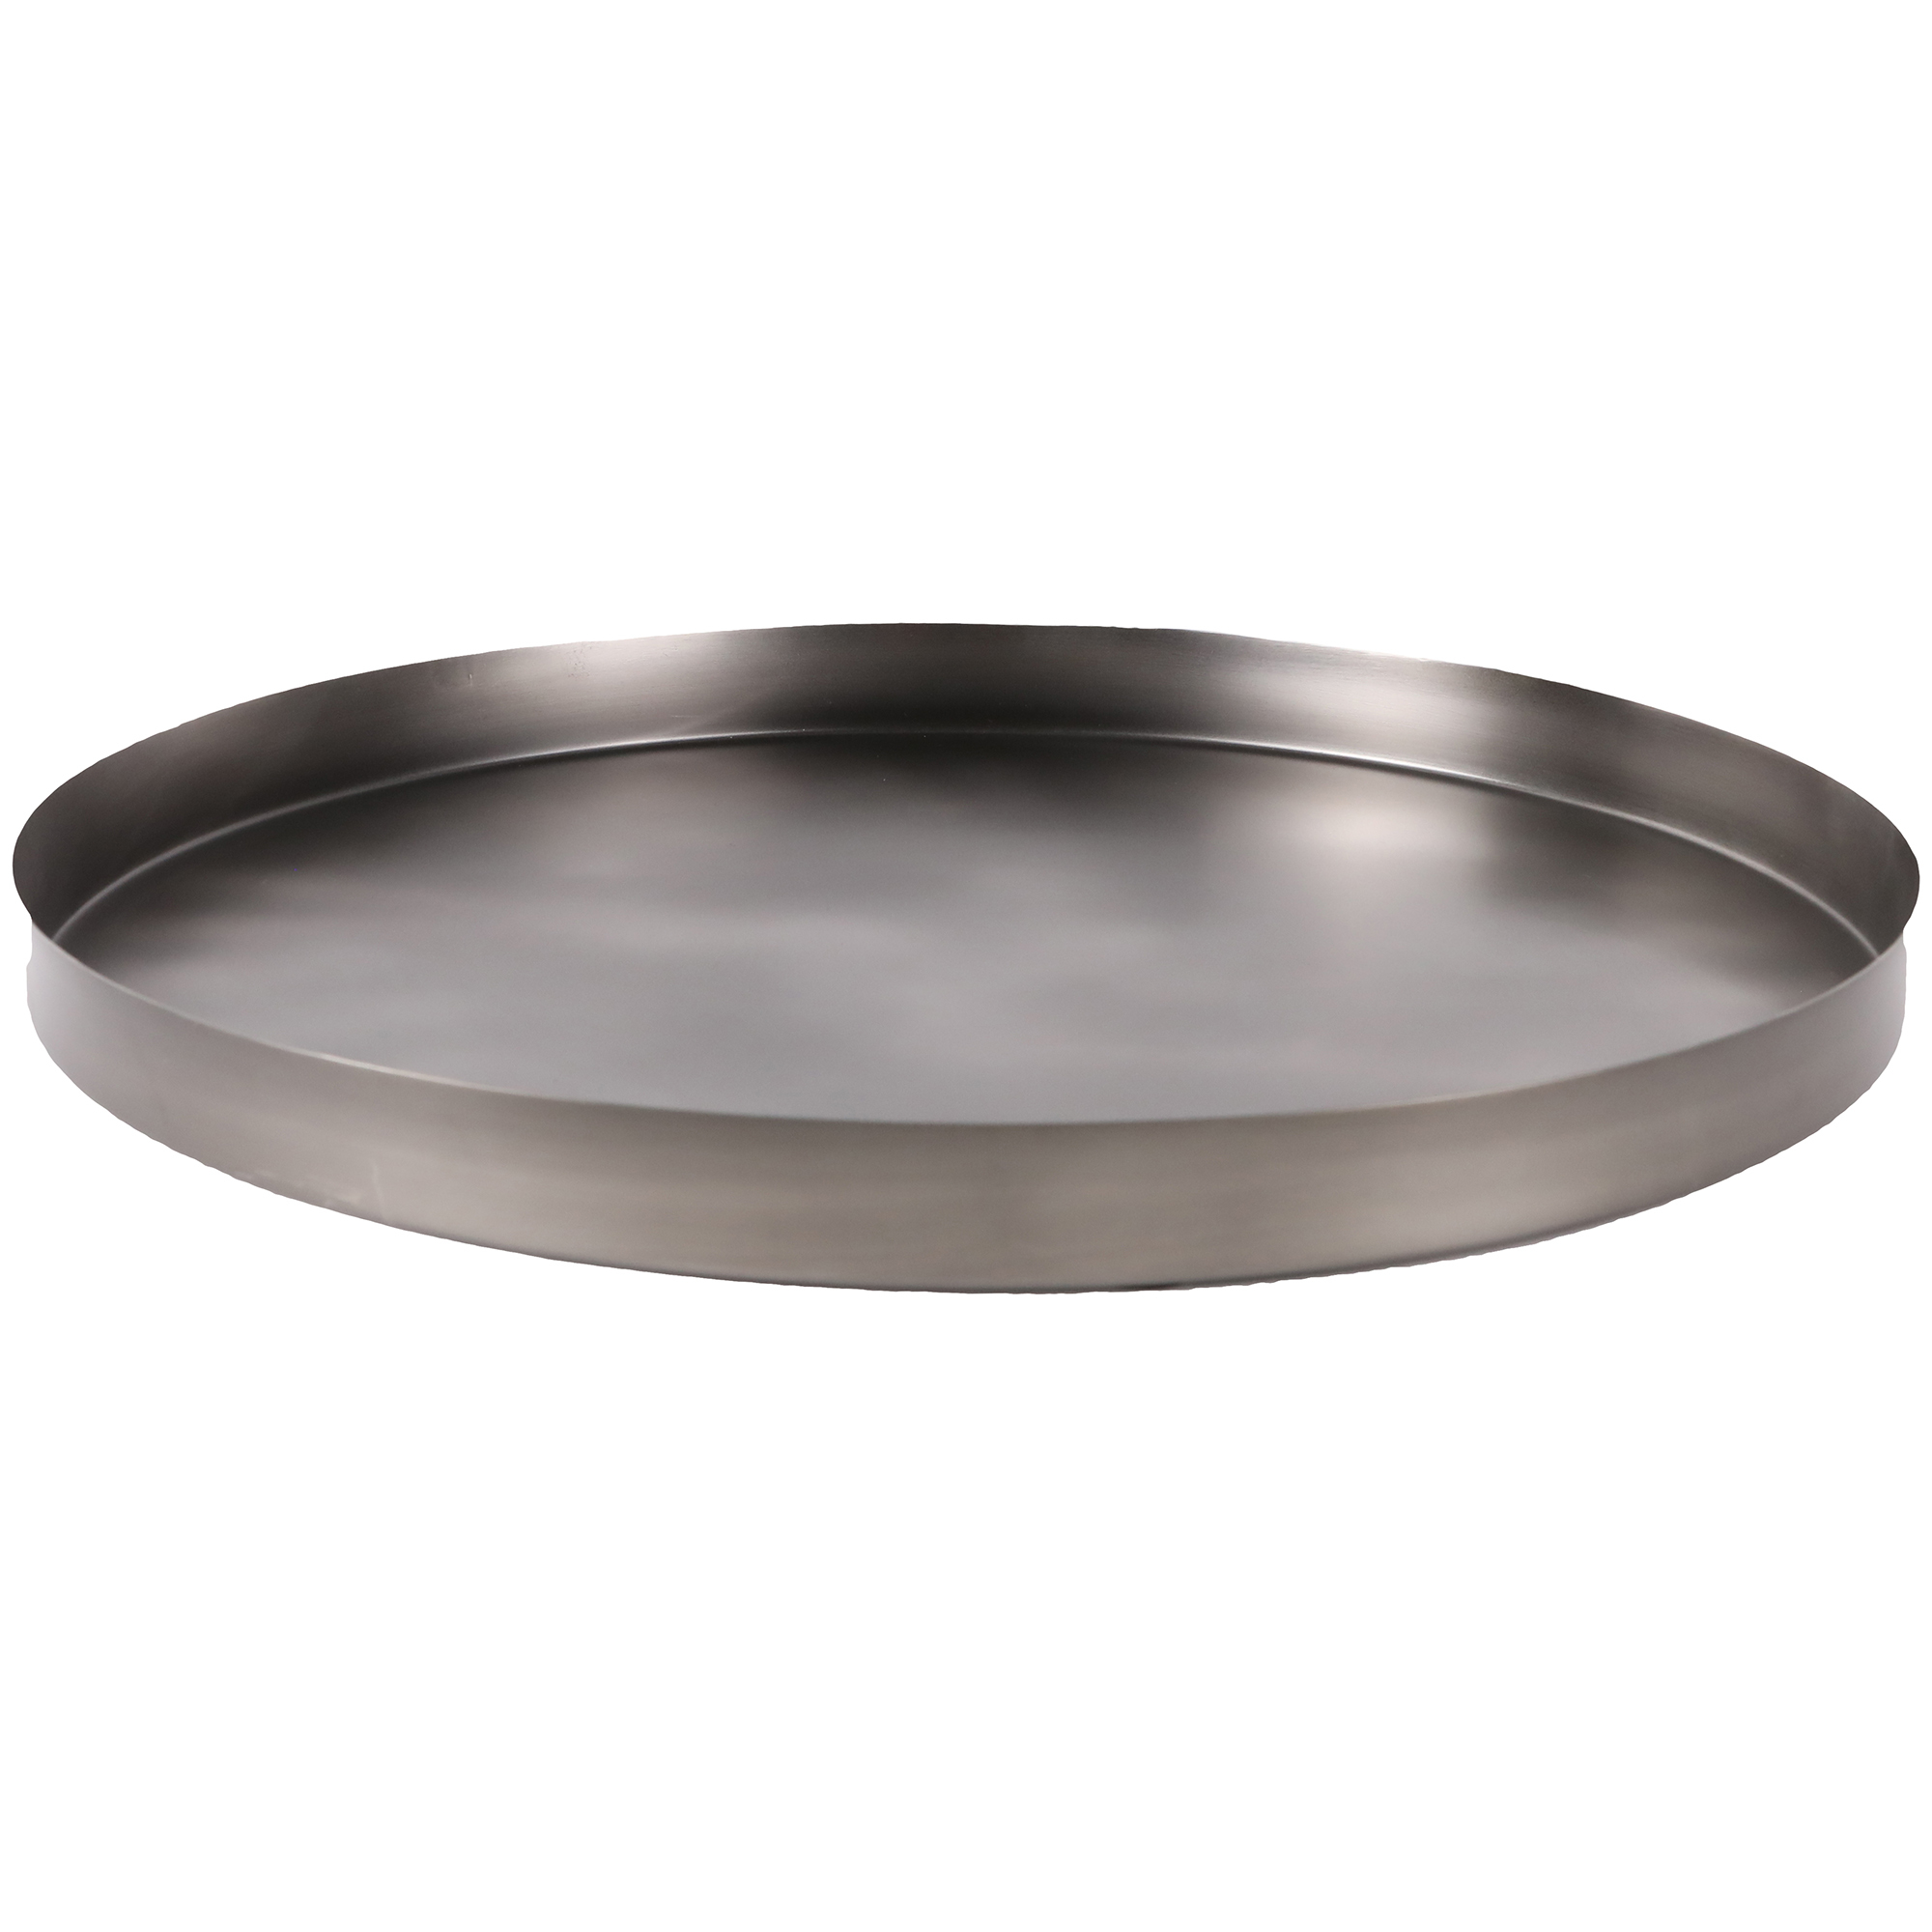 NEW-Geo-Round-Metal-Serving-Tray-Behr-amp-Co-Kitchen-amp-Butler-Trays thumbnail 4